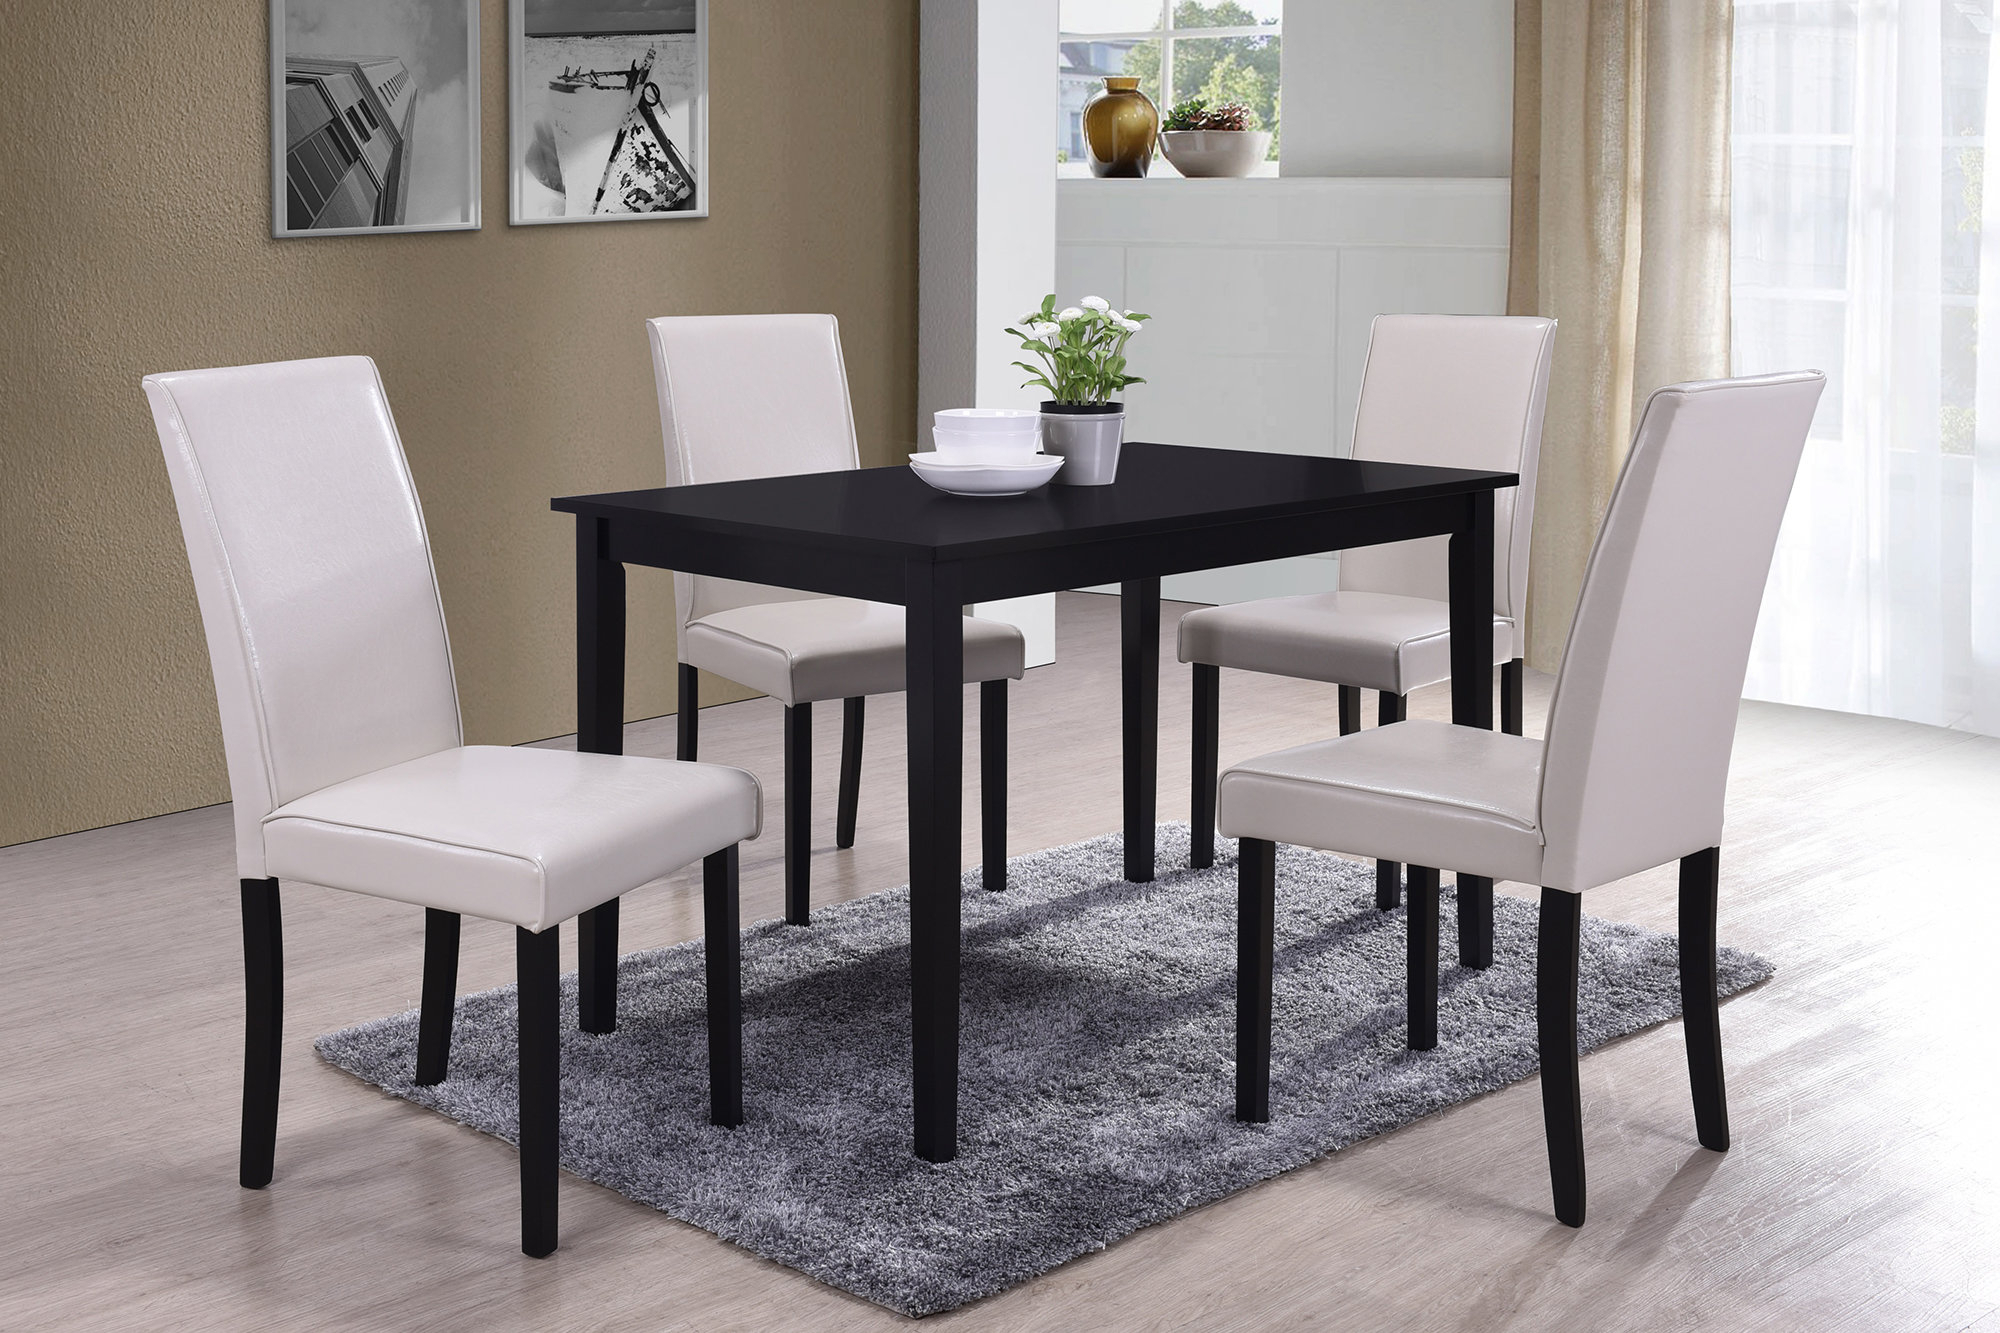 Inspiration about Well Liked Travon 5 Piece Dining Sets Within Bestmasterfurniture 5 Piece Dining Set (#4 of 20)